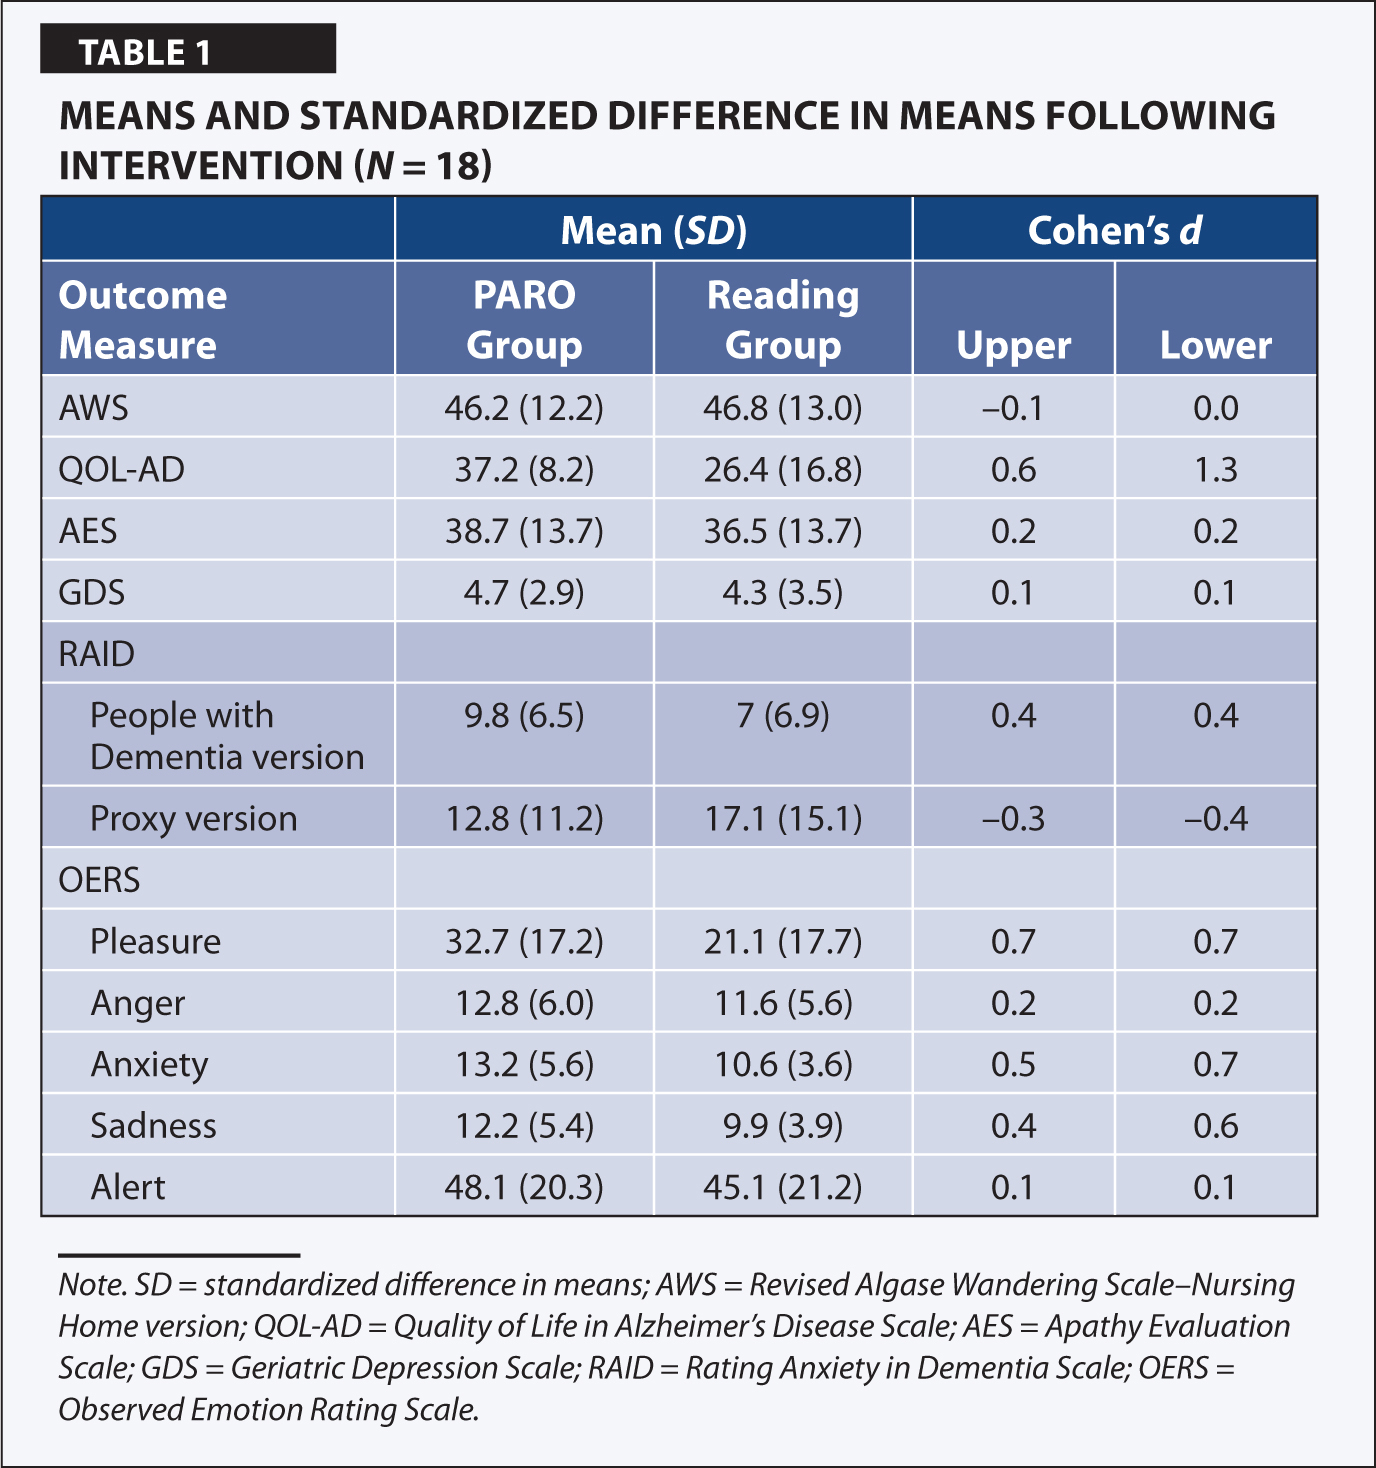 Means and Standardized Difference in Means Following Intervention (N = 18)